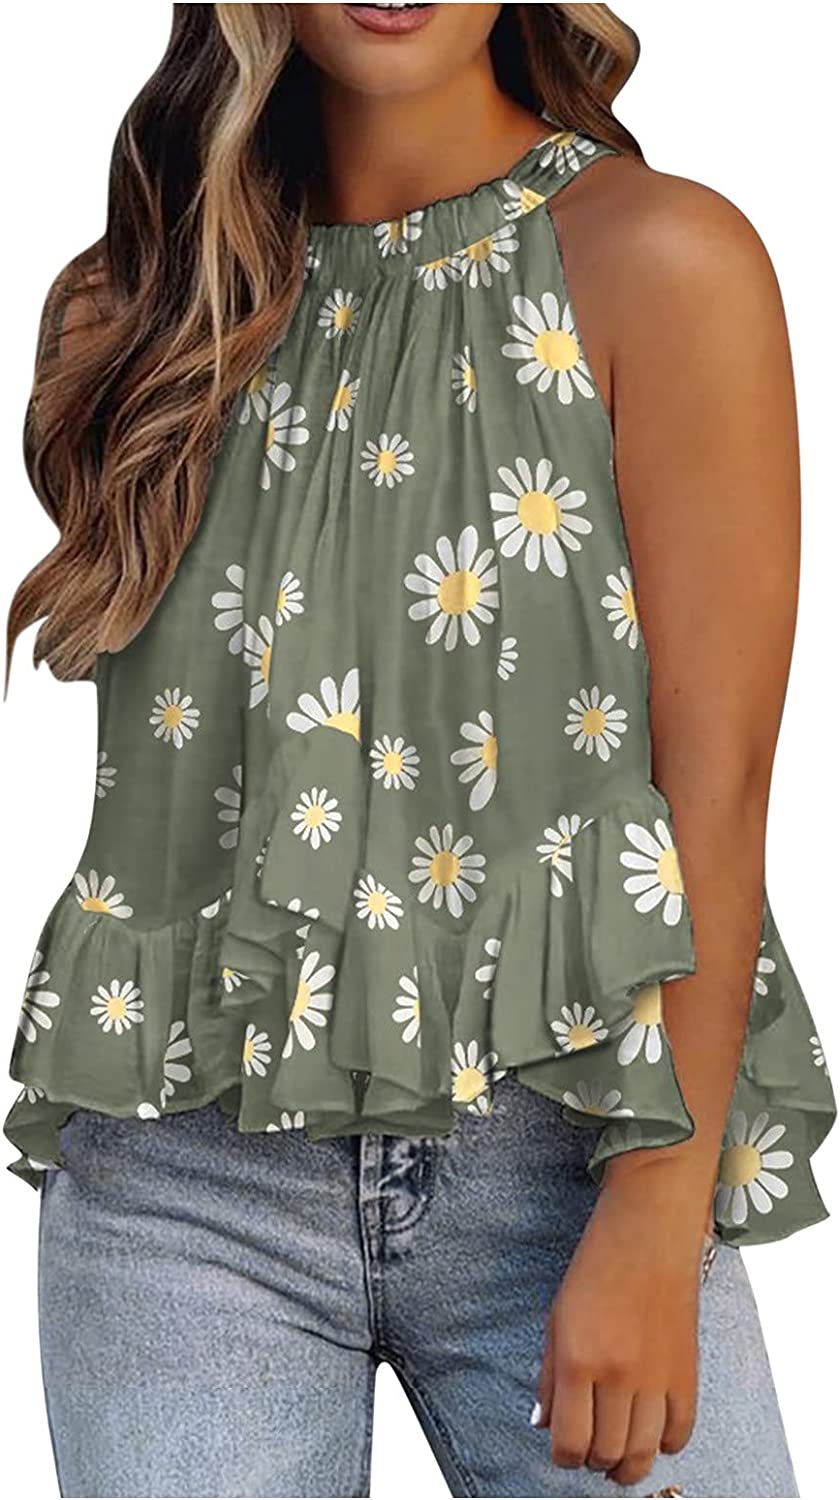 Tank Tops for Women,Summer Fashion Sleeveless Halter Neck Tee Tops Blouse Dot Printed Casual Tank Tops